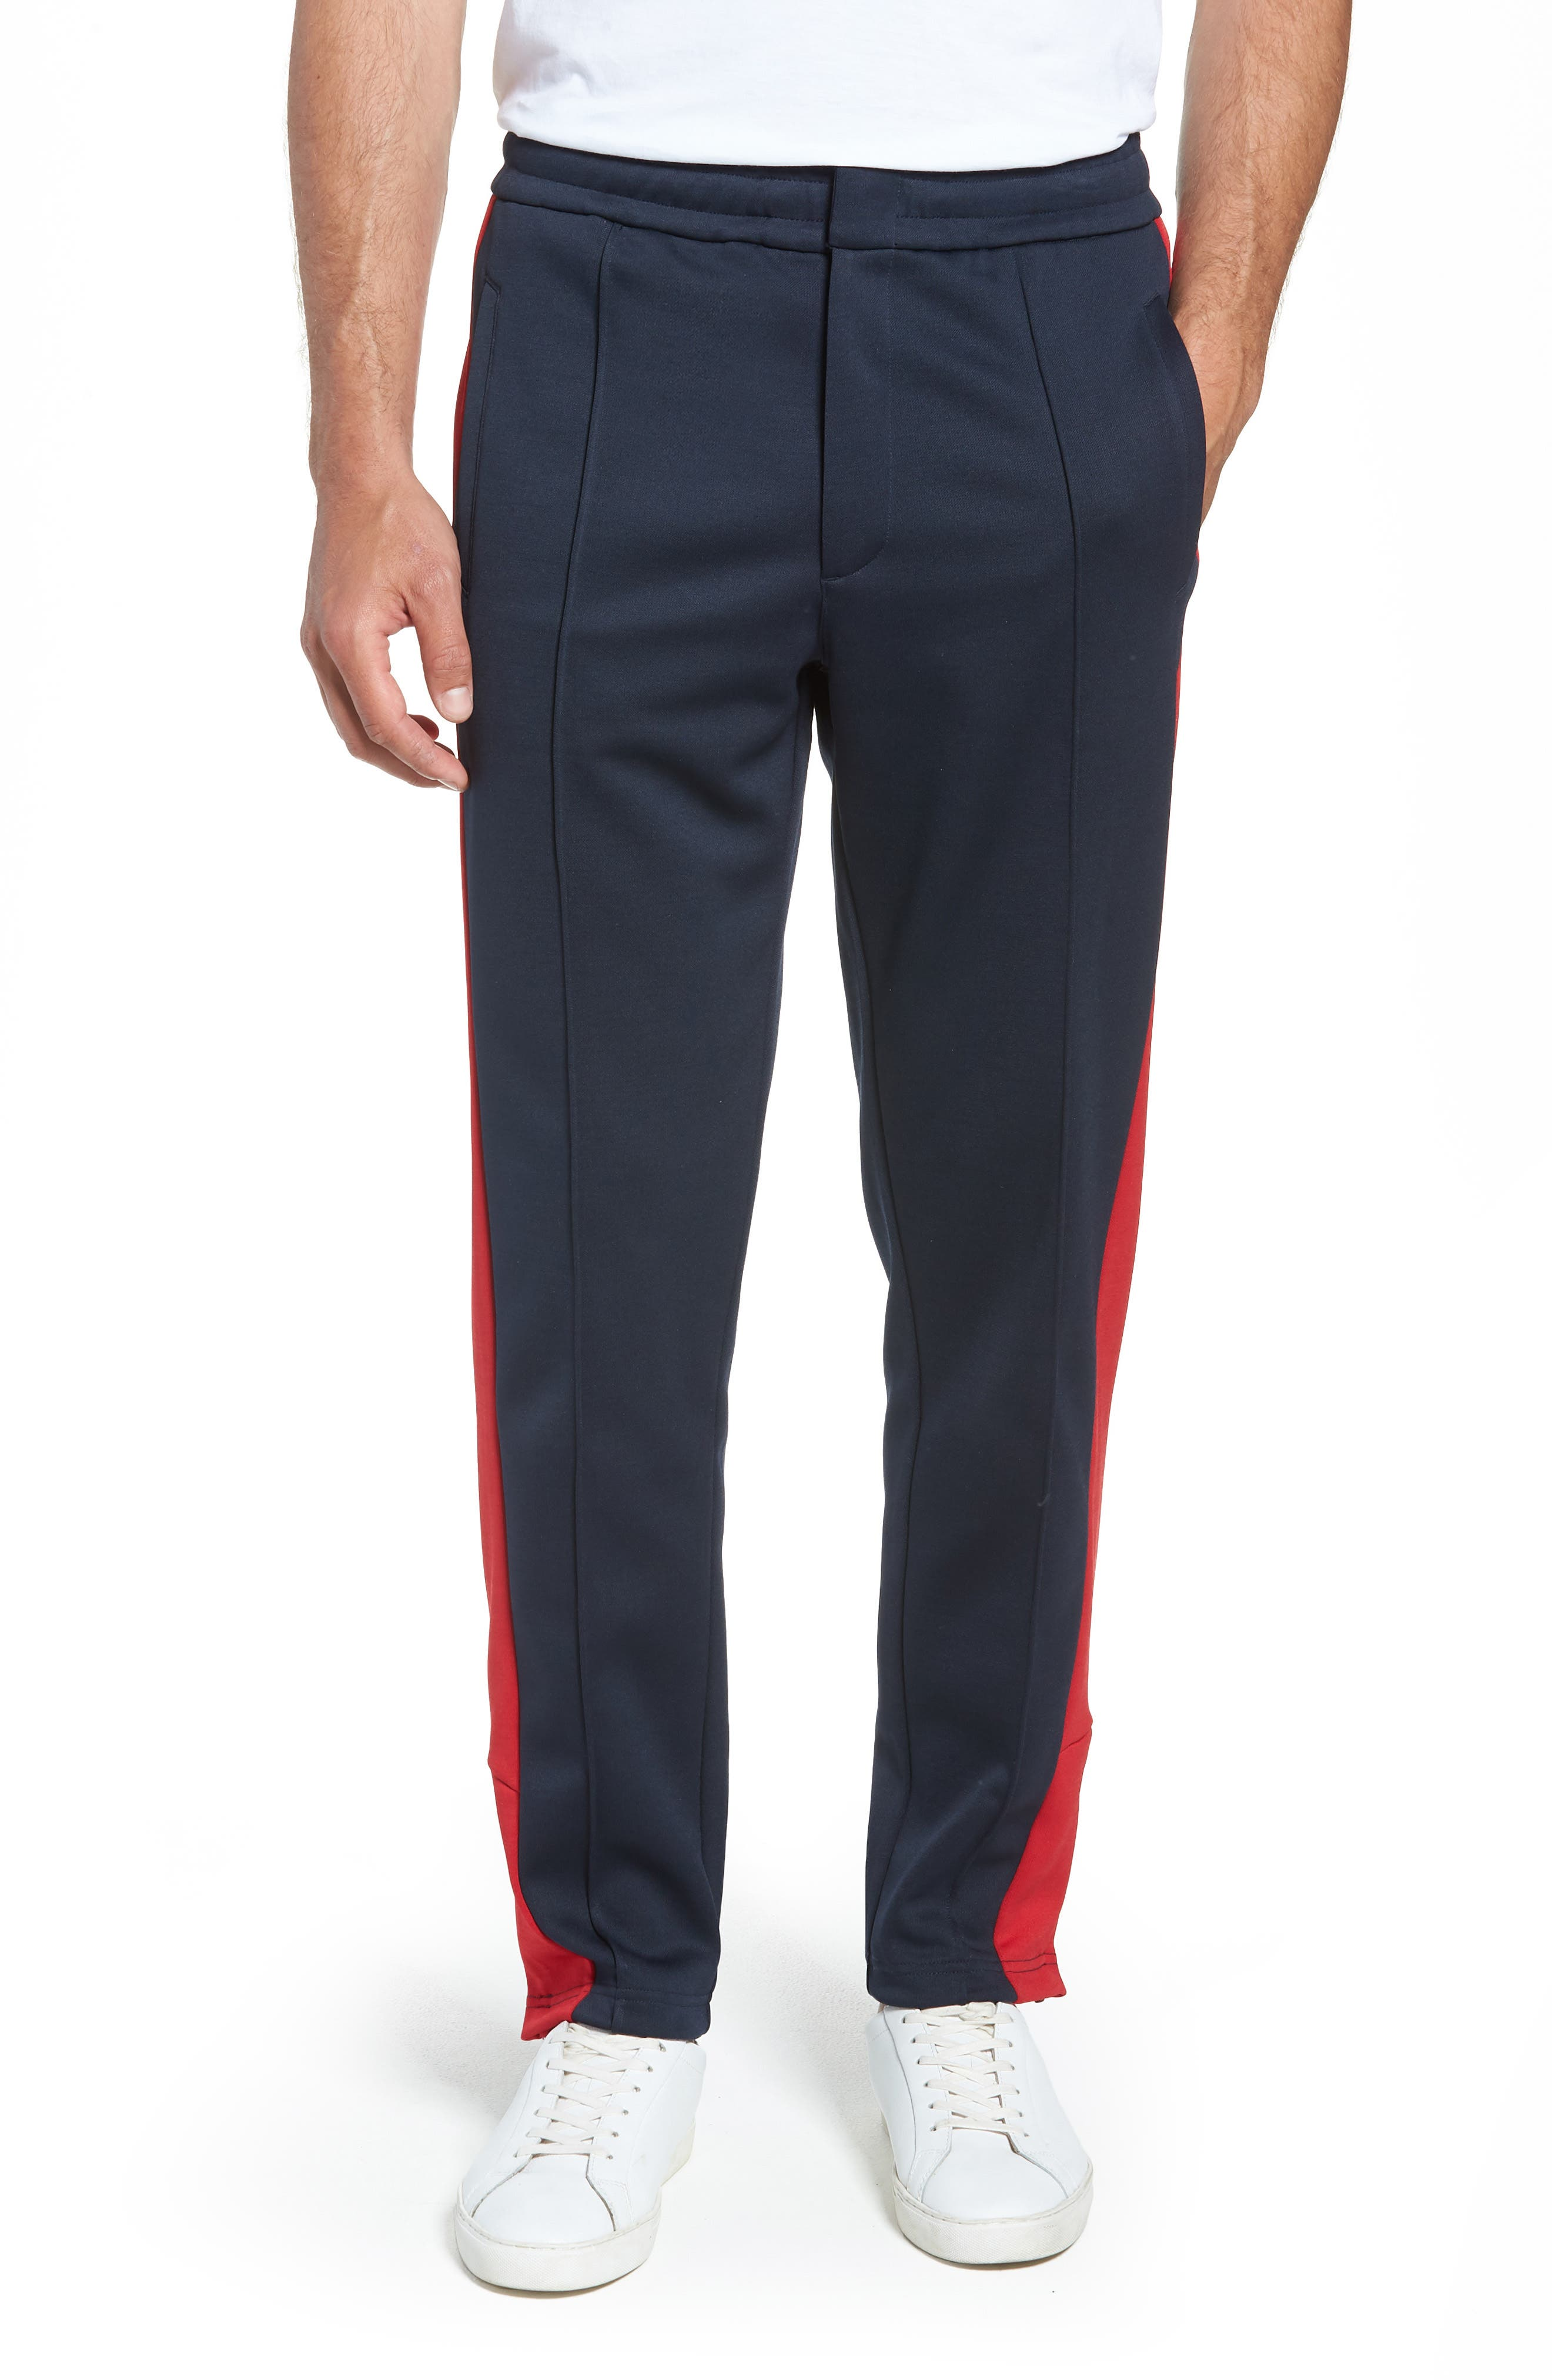 Club Slim Fit Track Pants,                         Main,                         color, NAVY/ RED